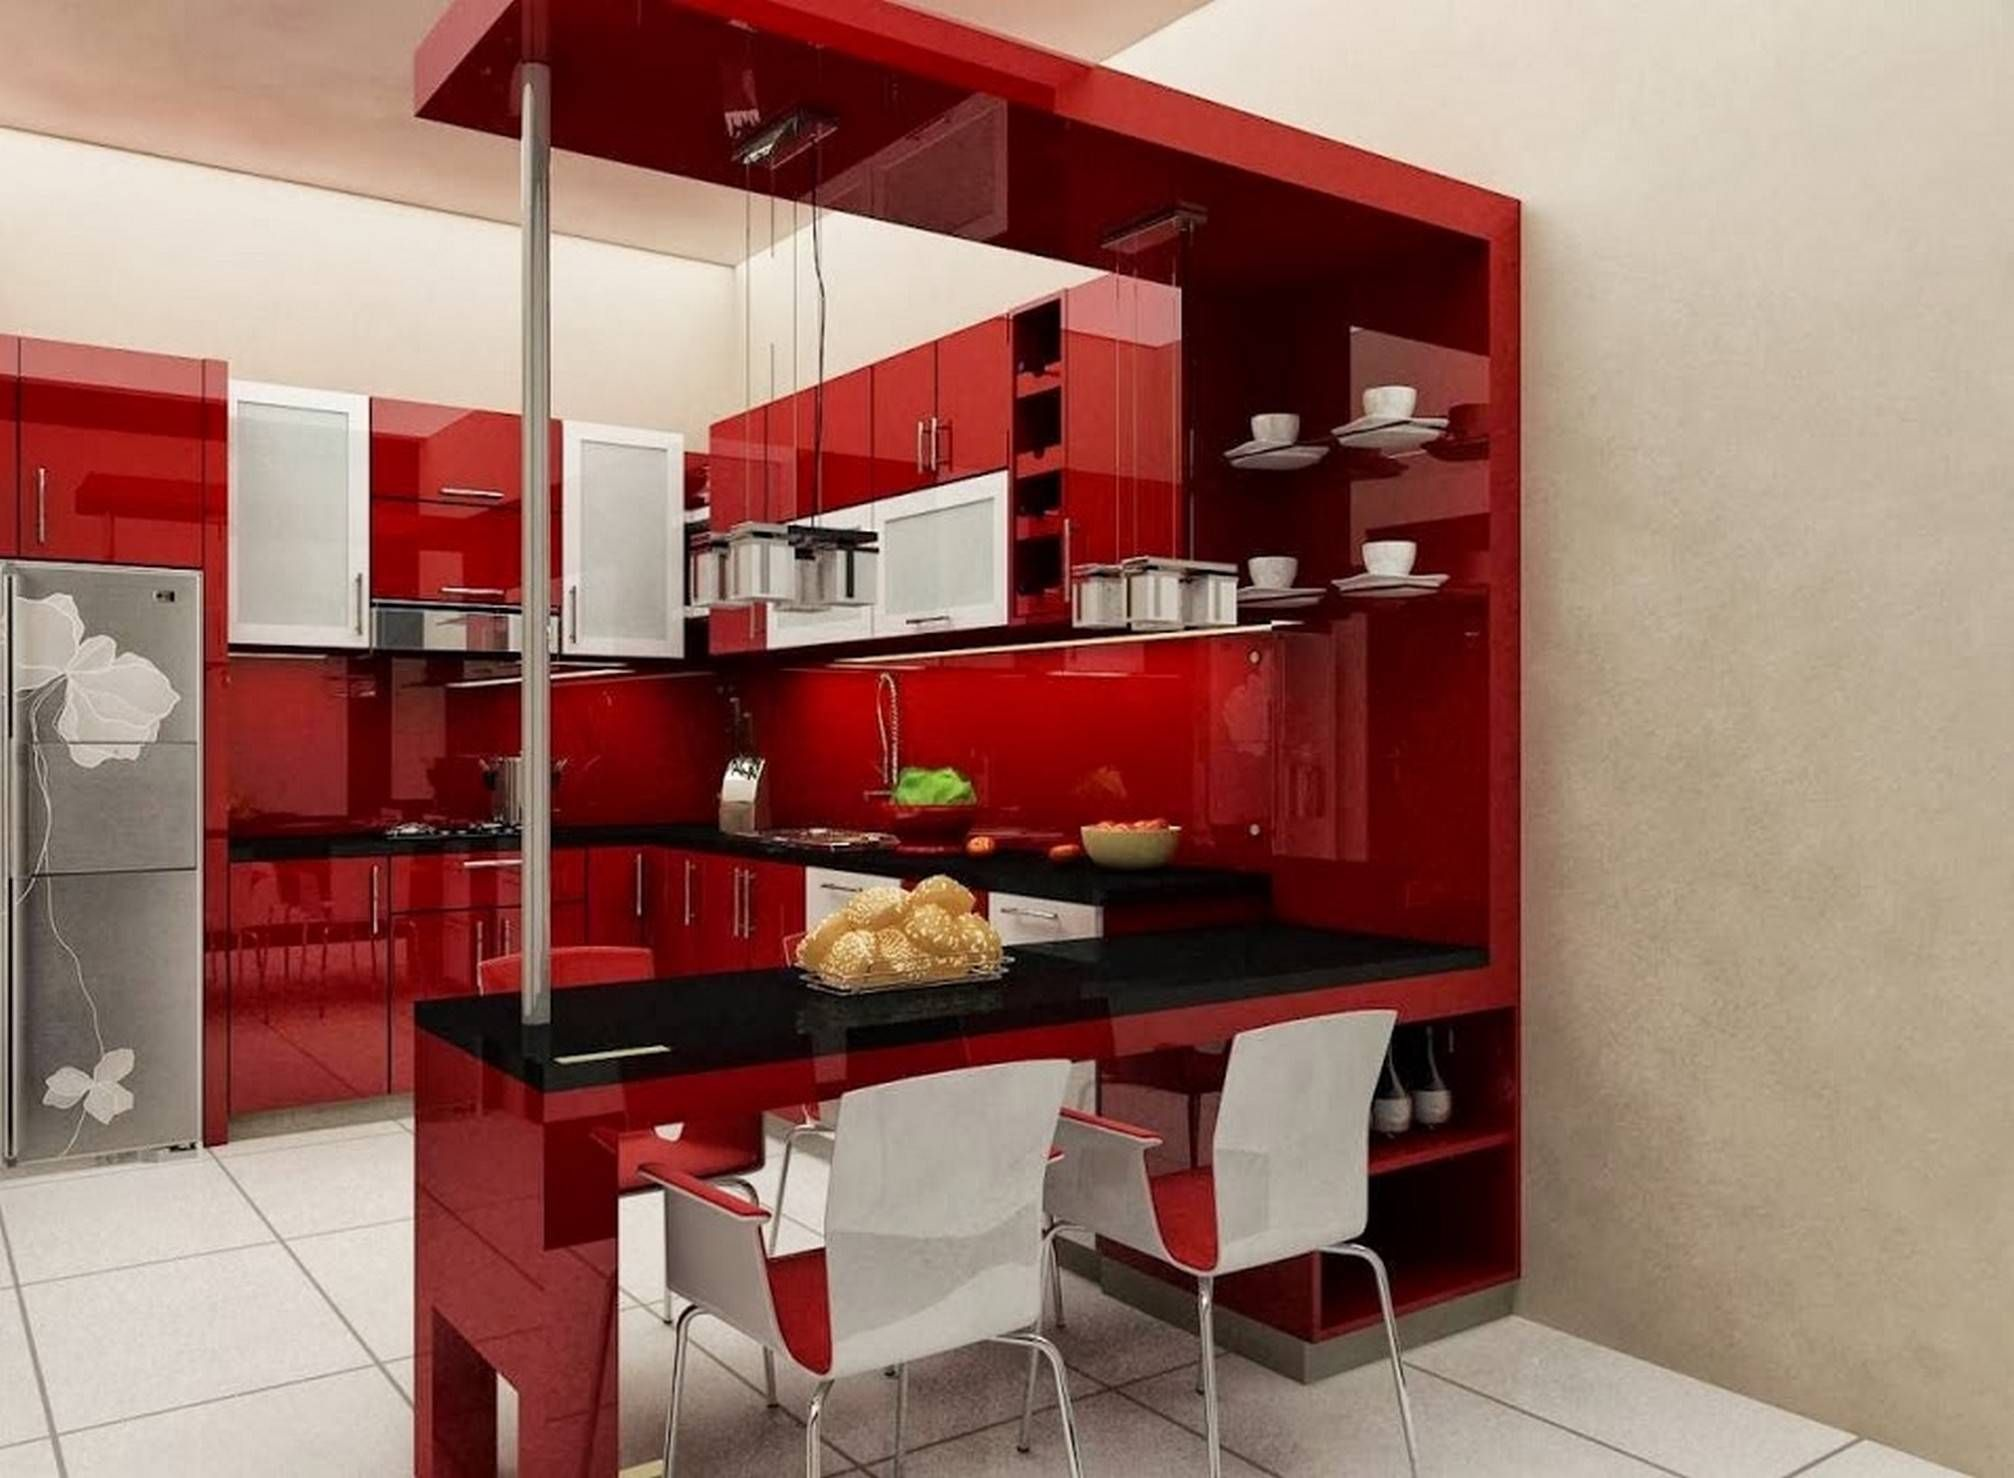 Minimalist interior concept with red kitchen cabinets for